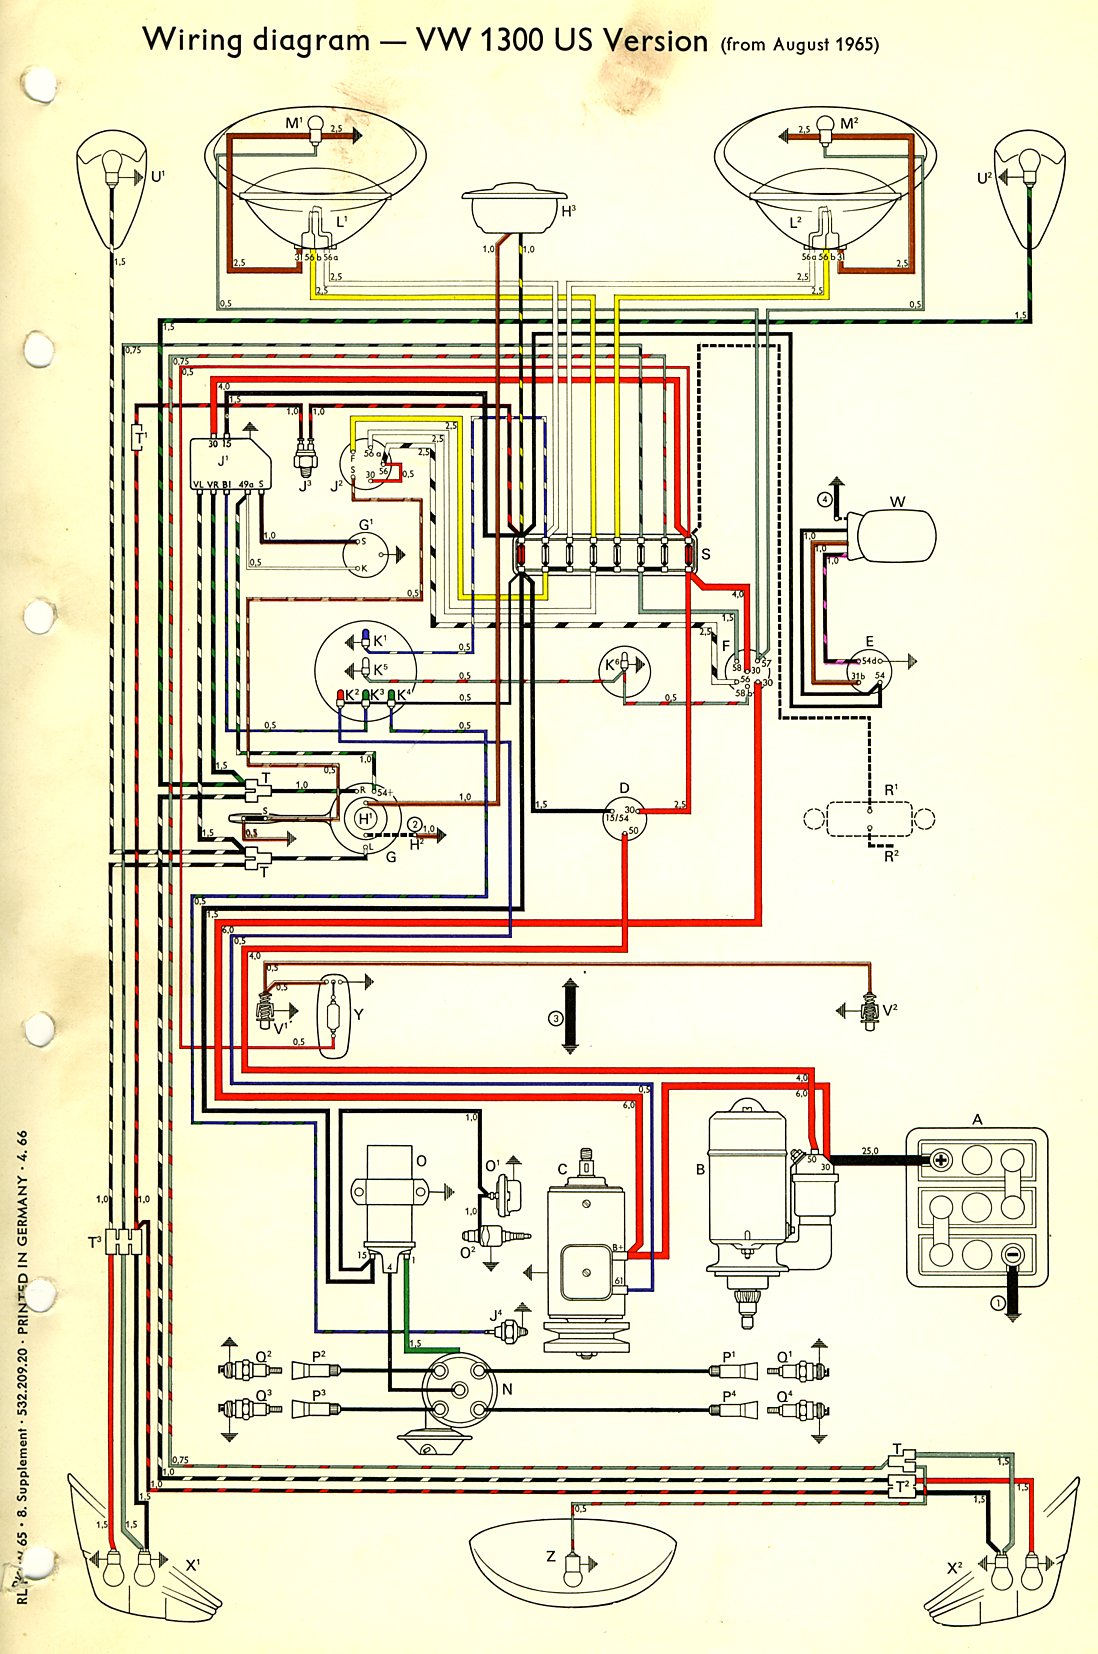 bug_66_USA thesamba com type 1 wiring diagrams Basic Electrical Wiring Diagrams at bayanpartner.co